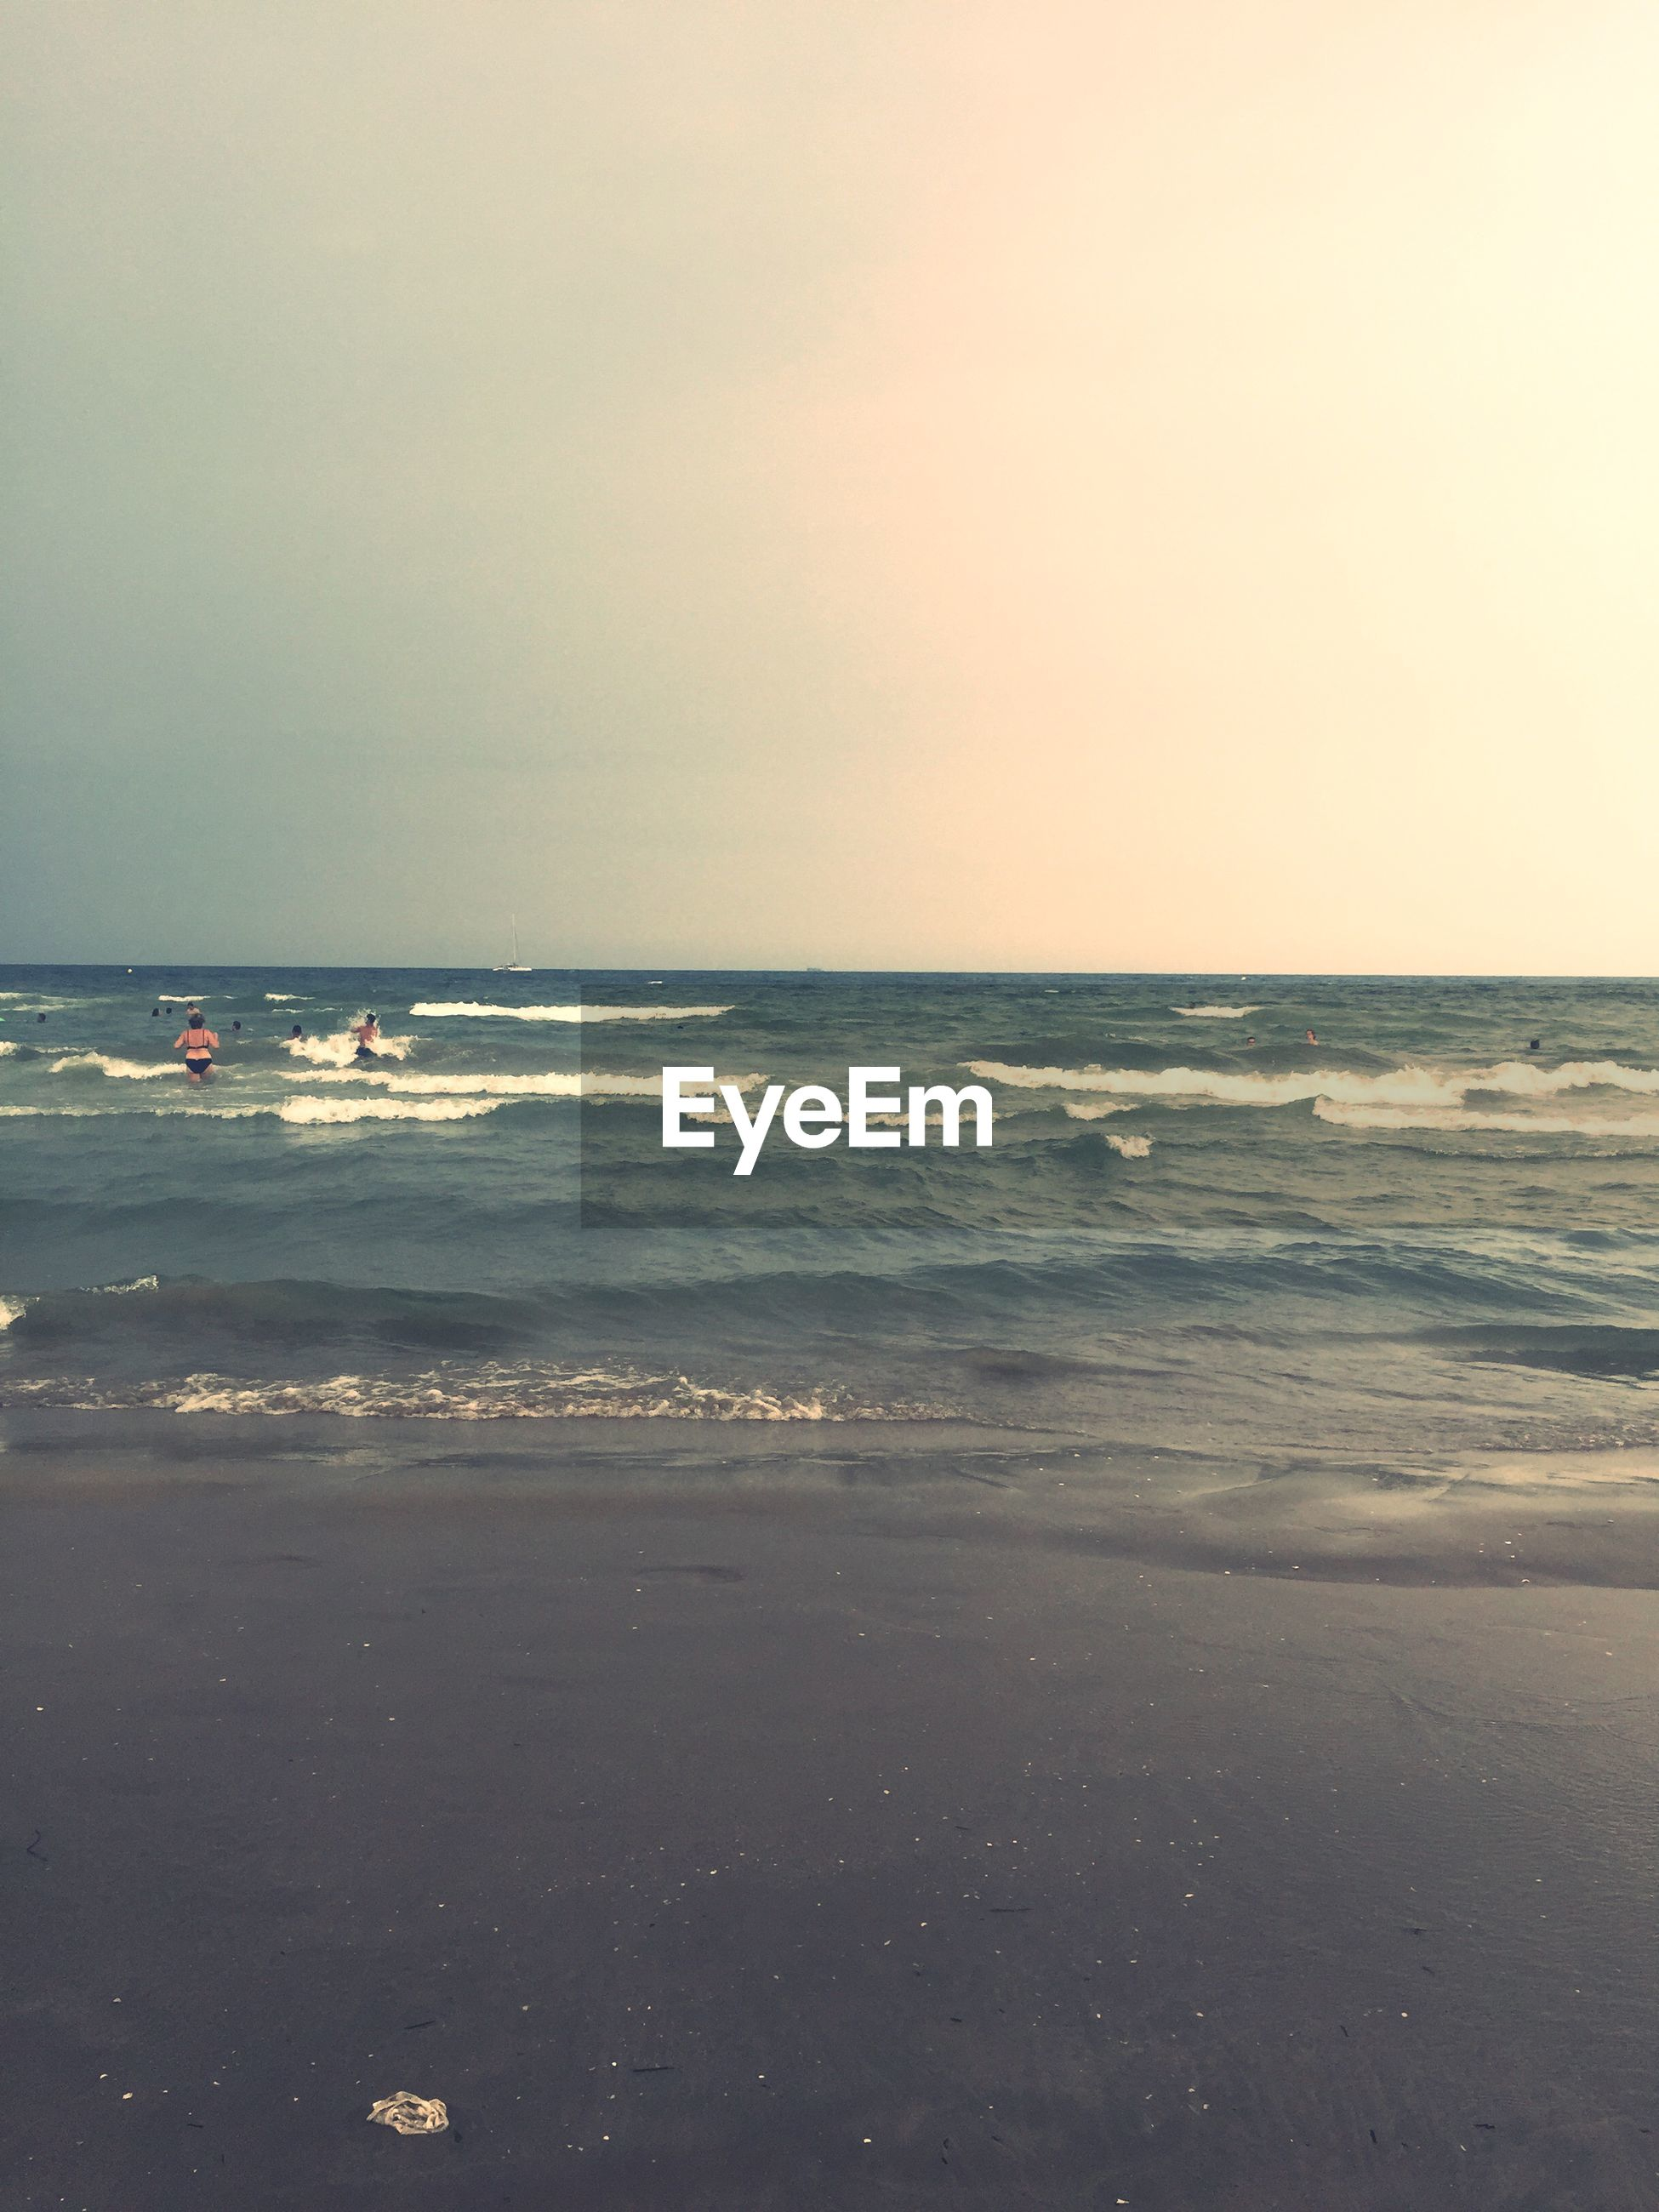 sea, horizon over water, beach, water, shore, scenics, tranquil scene, beauty in nature, tranquility, wave, sand, sky, nature, copy space, clear sky, idyllic, incidental people, surf, coastline, nautical vessel